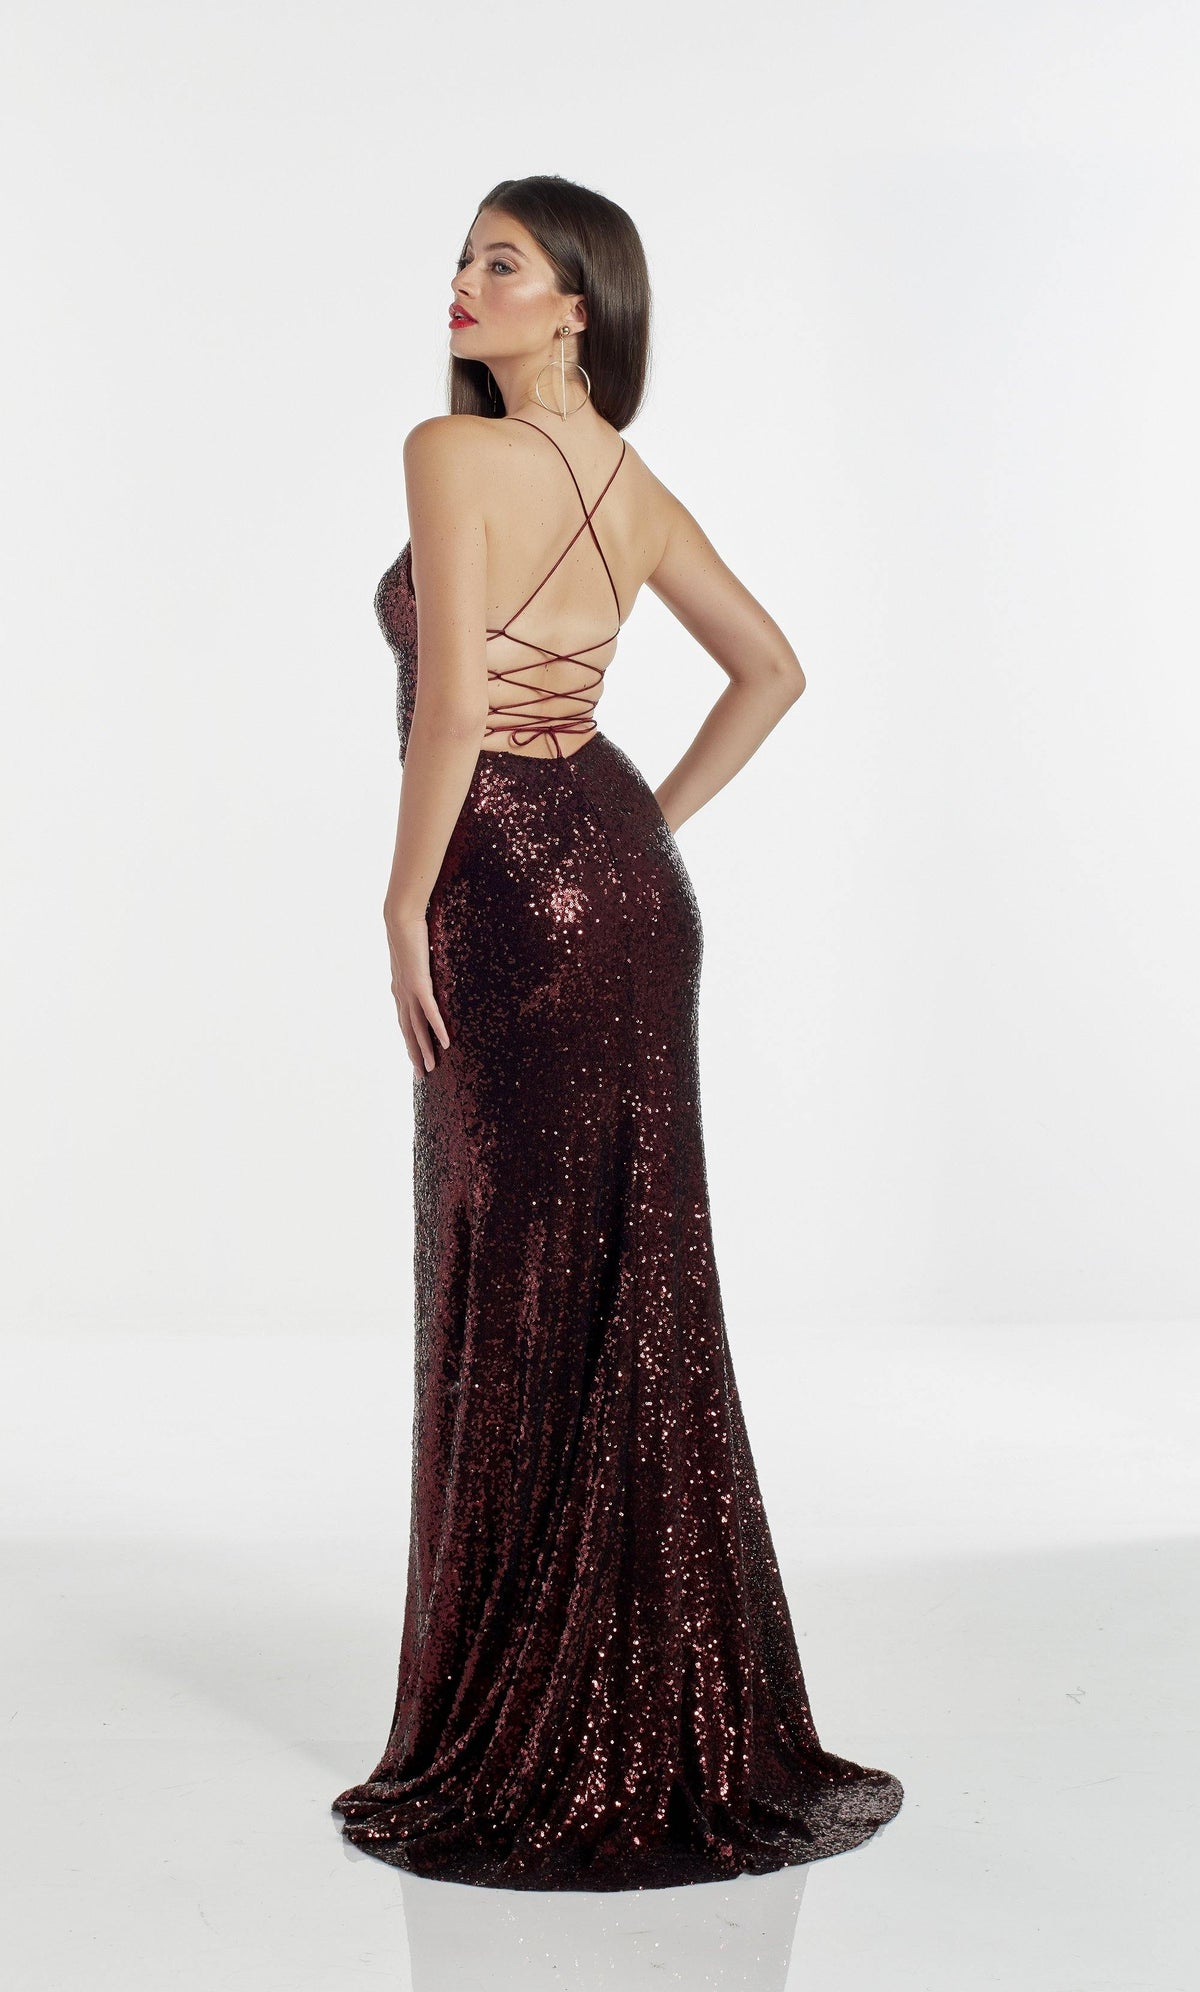 Fully sequin Burgundy fit and flare prom dress with a strappy back and train